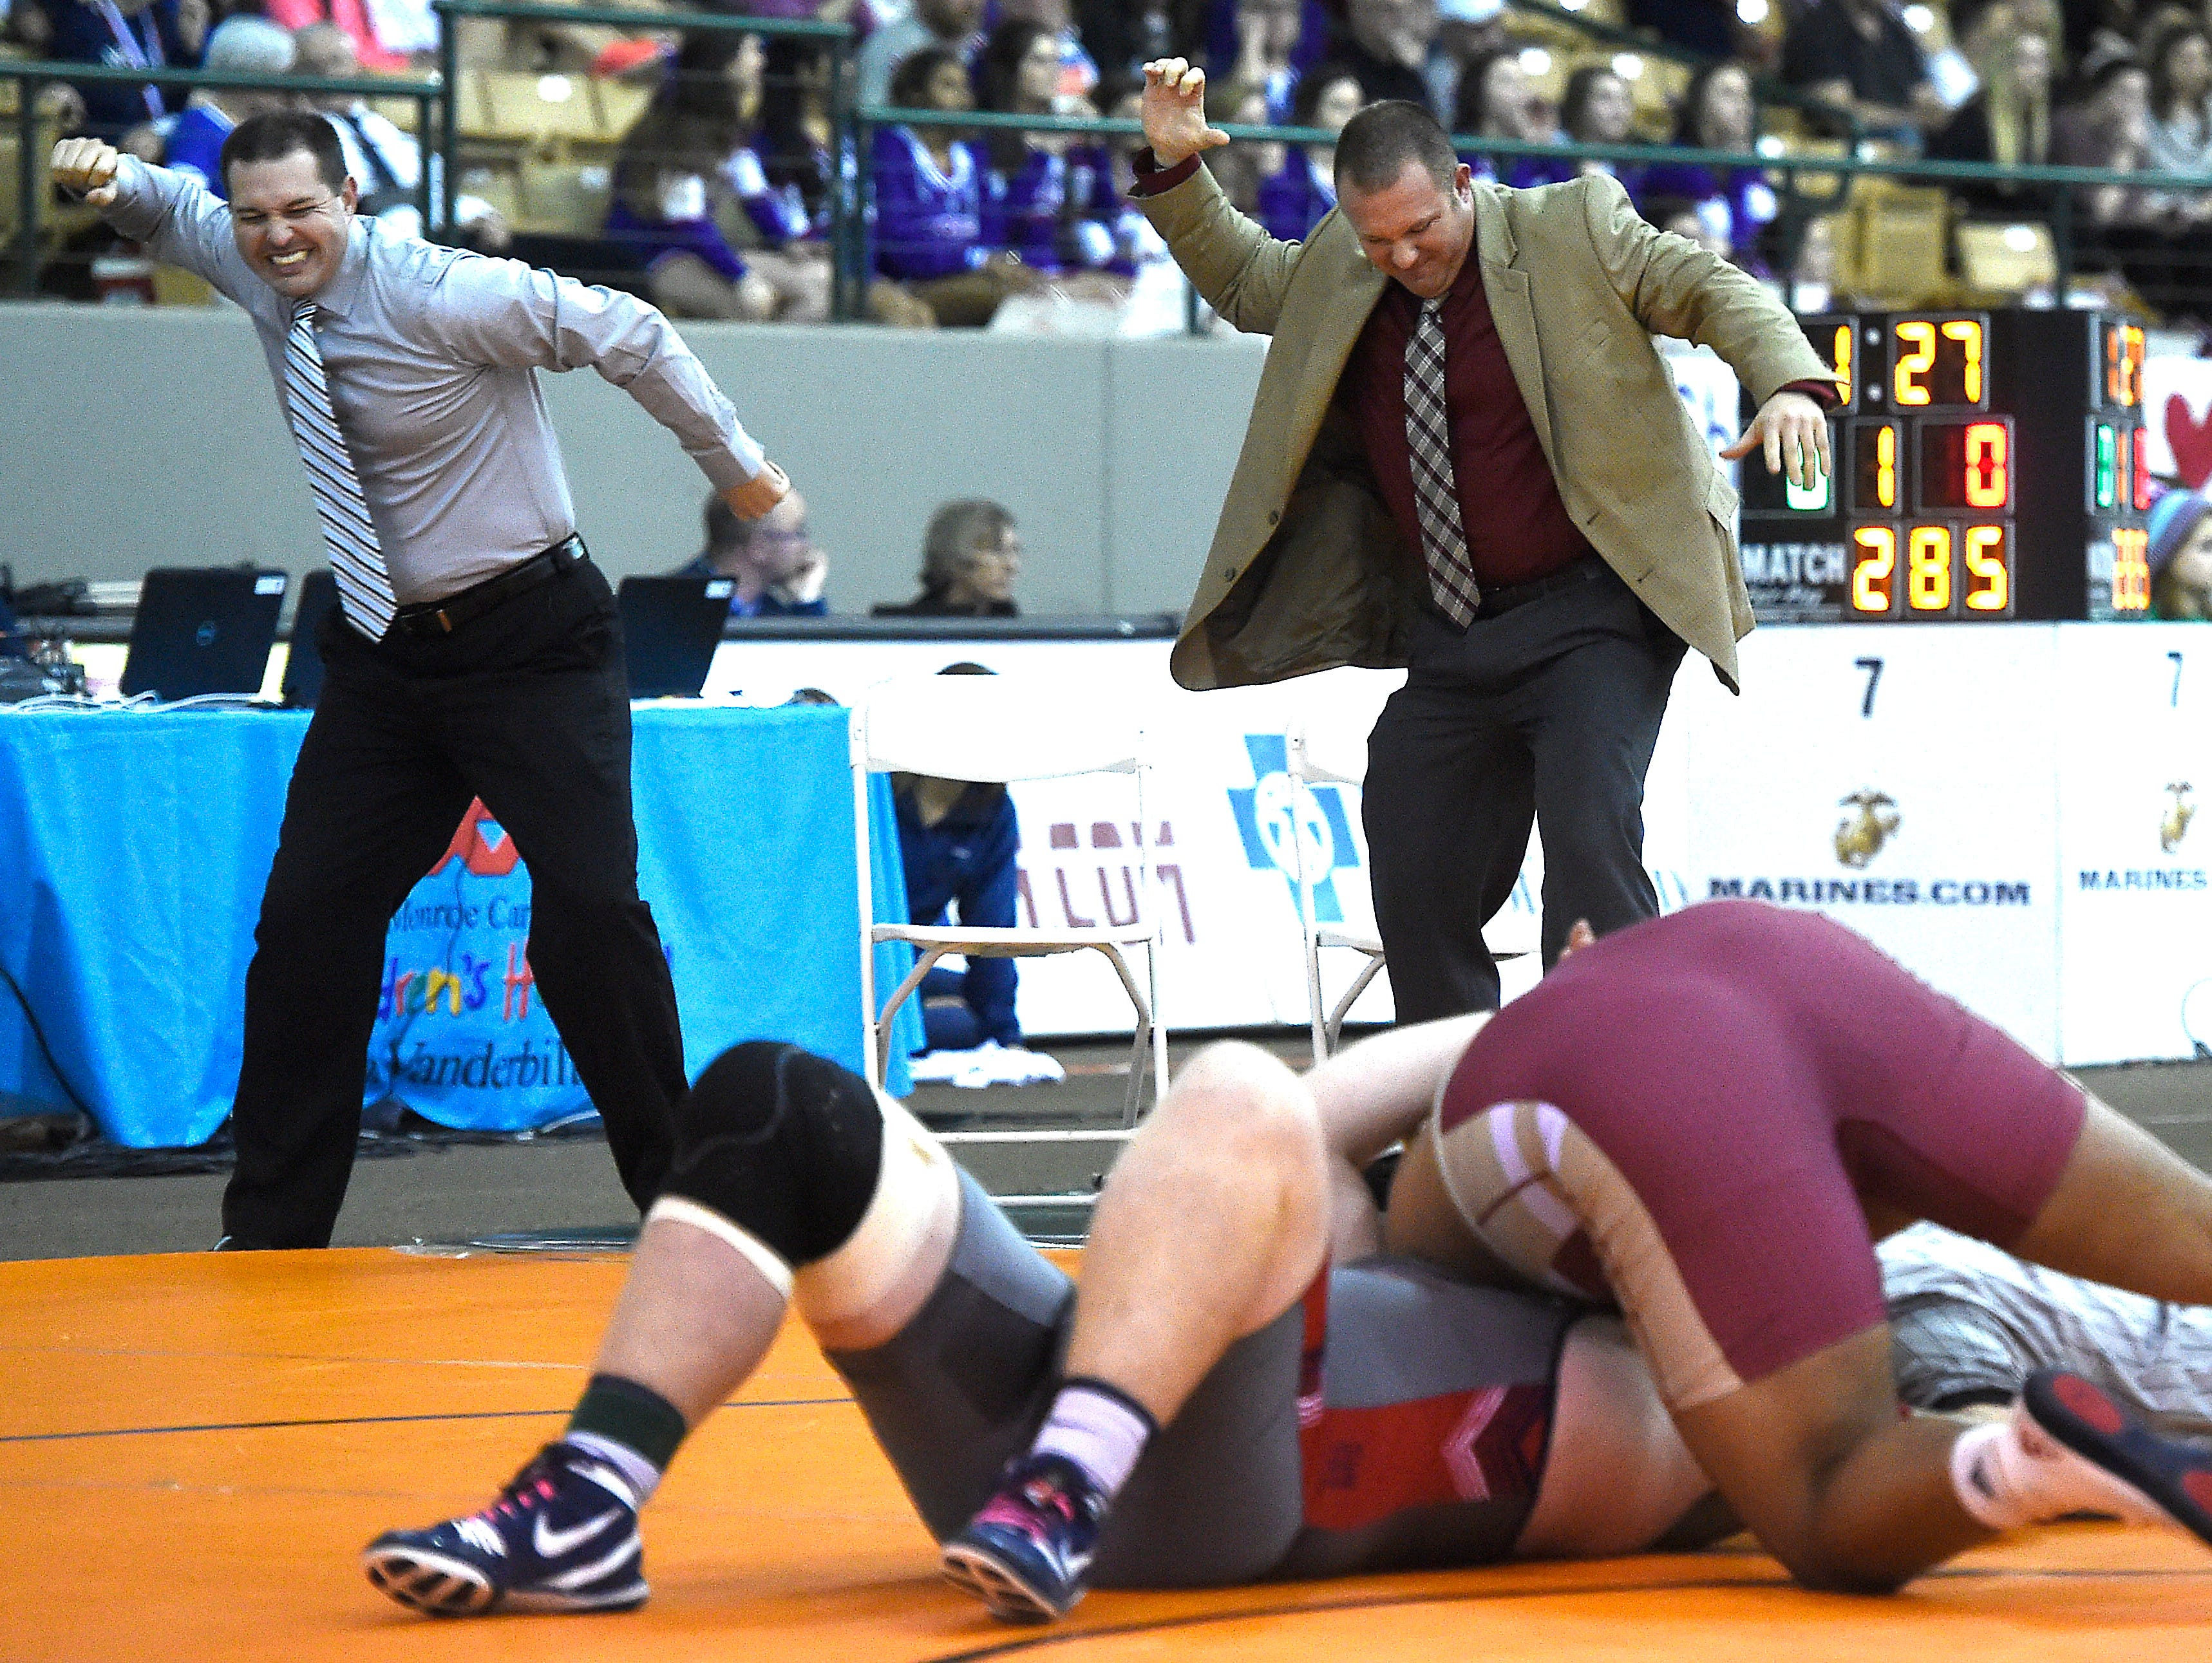 Riverdale coaches including Shawn Jones, right, celebrate before the pin is finished as they knew Nick Boykin (Riverdale) was going to defeat Logan Townsend (Jefferson Co.) at the TSSAA state wrestling championships Saturday Feb. 20, 2016, in Franklin, Tenn.